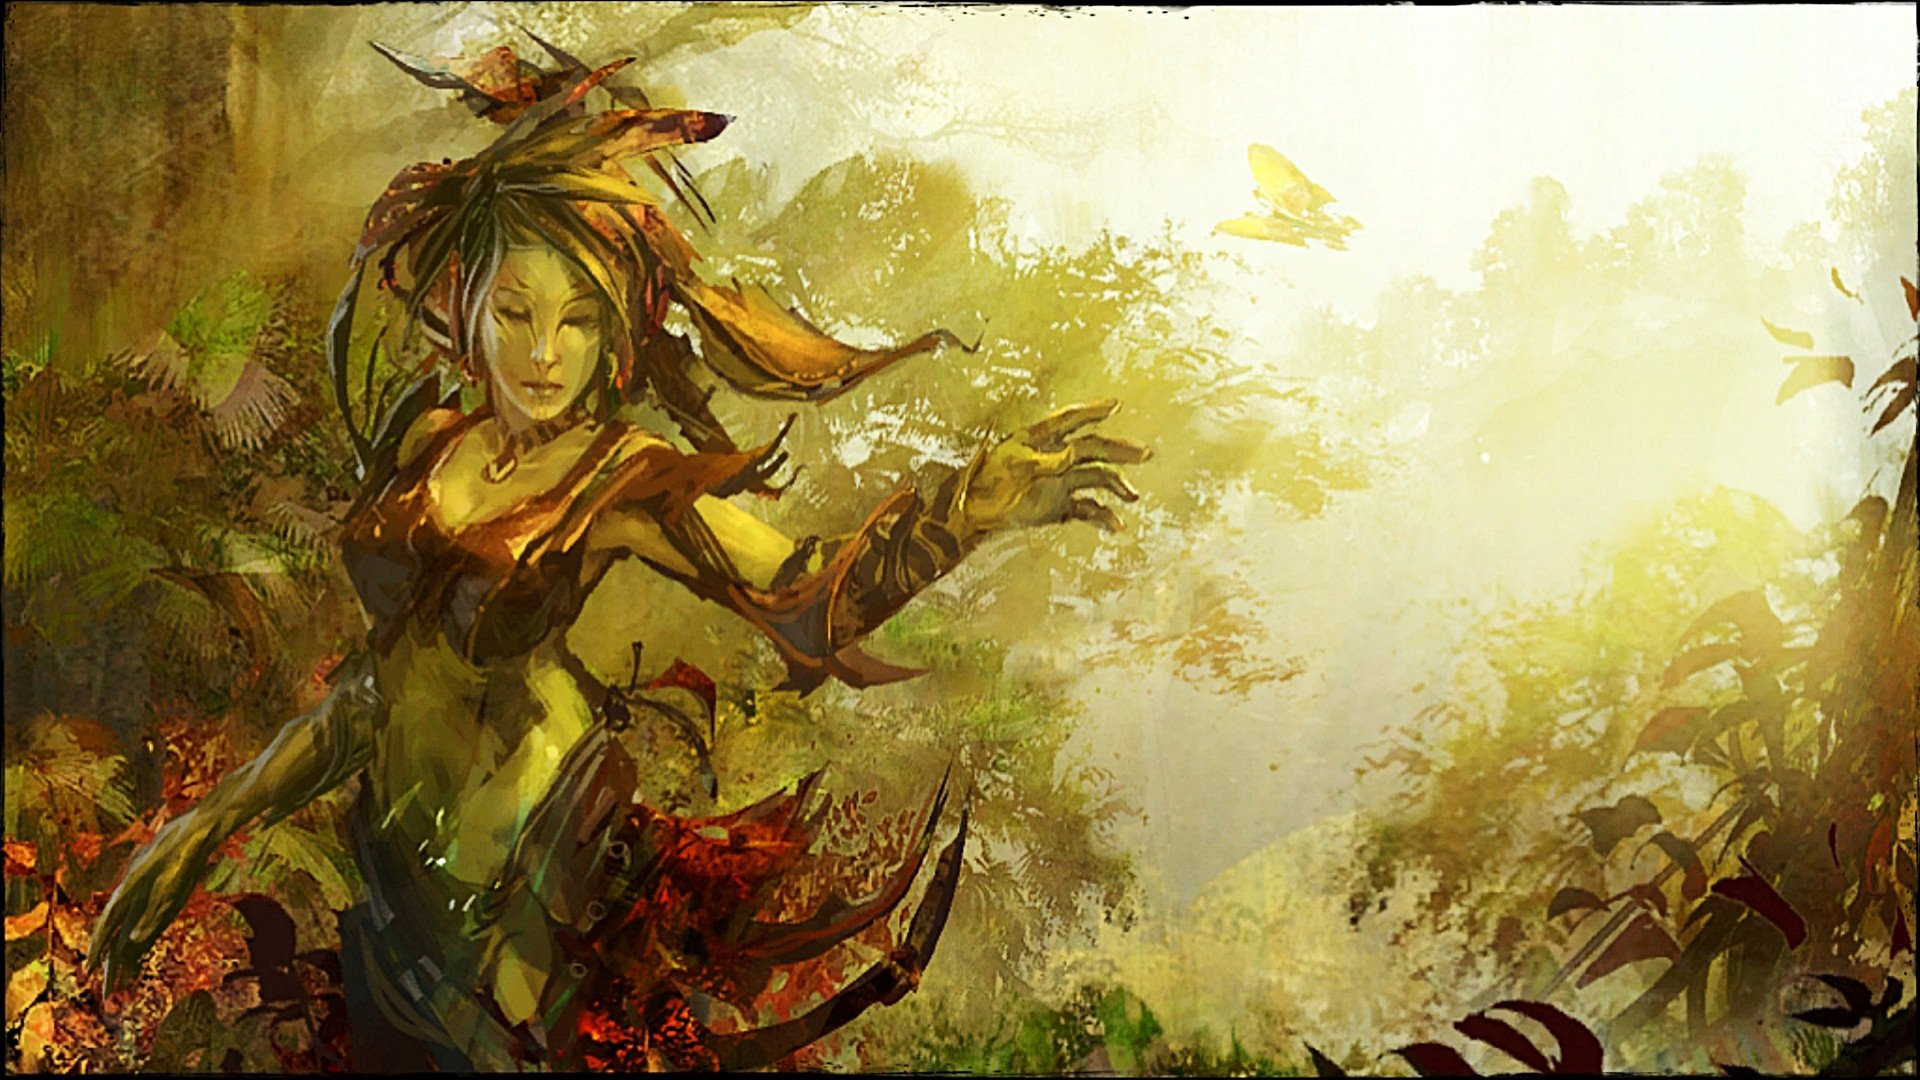 Guild Wars 2 Full Hd Wallpaper And Background Image: After The Storm HD Wallpaper